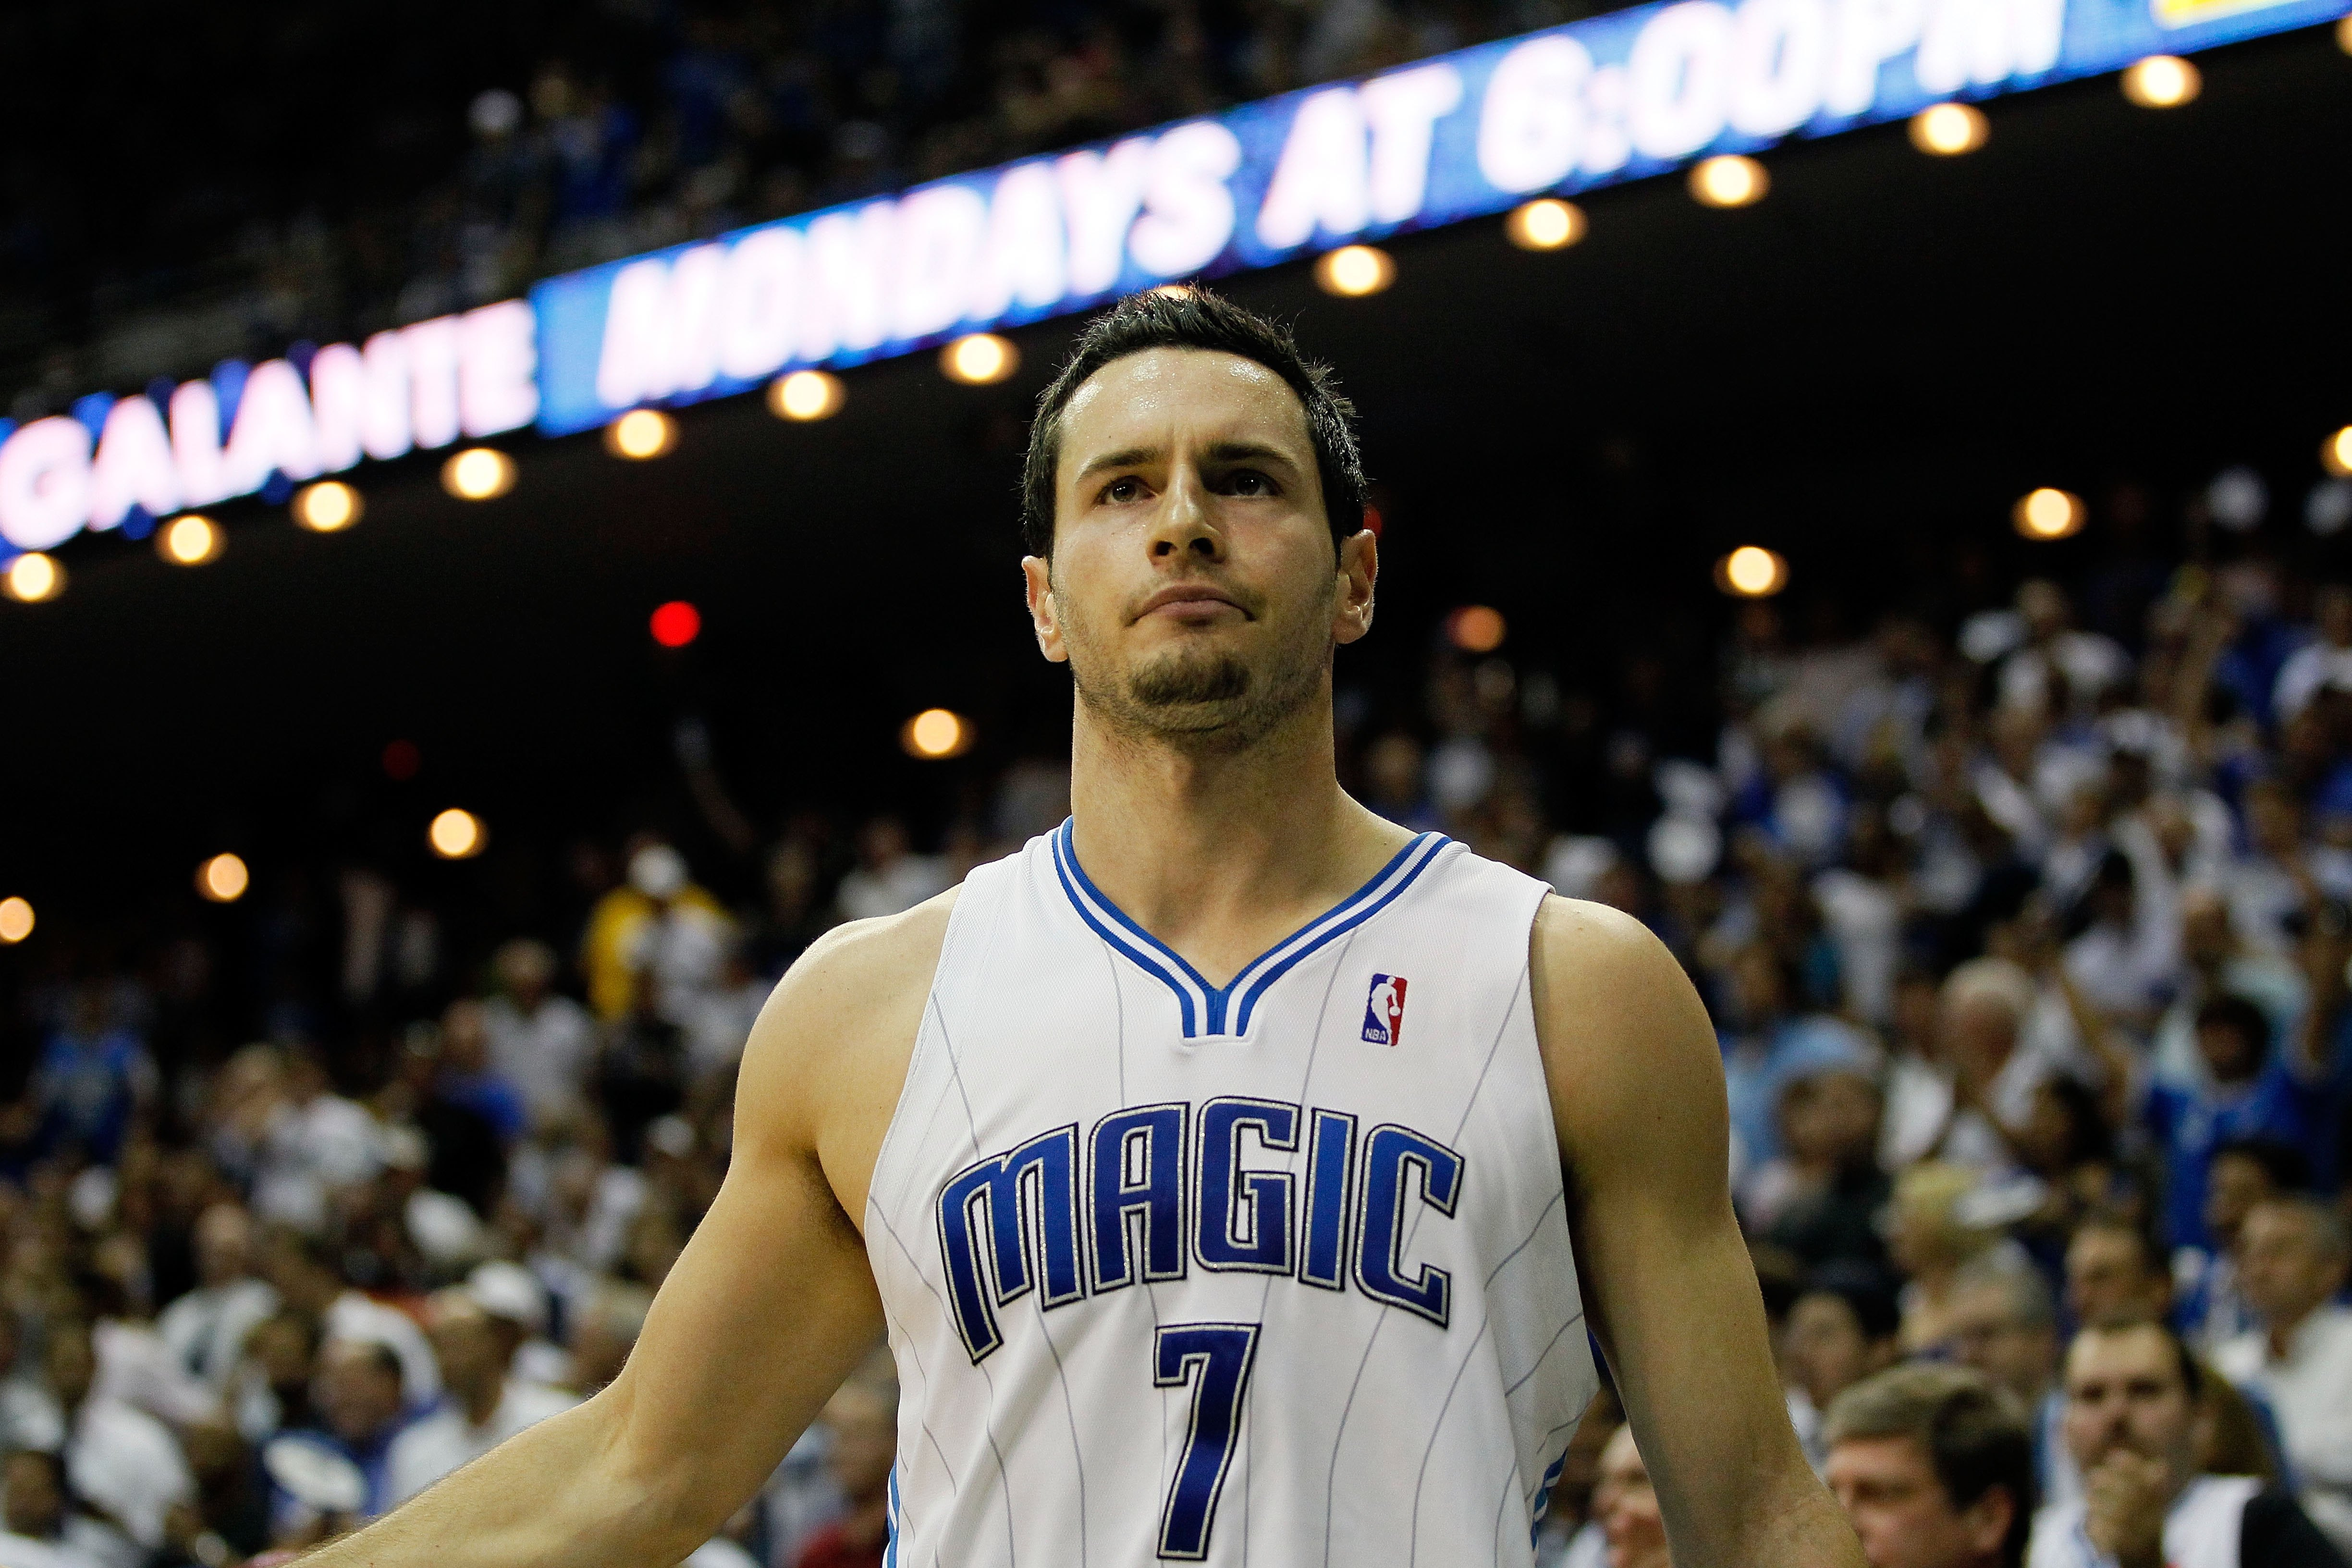 ORLANDO, FL - MAY 26:  J.J. Redick #7 of the Orlando Magic looks on against the Boston Celtics in Game Five of the Eastern Conference Finals during the 2010 NBA Playoffs at Amway Arena on May 26, 2010 in Orlando, Florida.  NOTE TO USER: User expressly ack